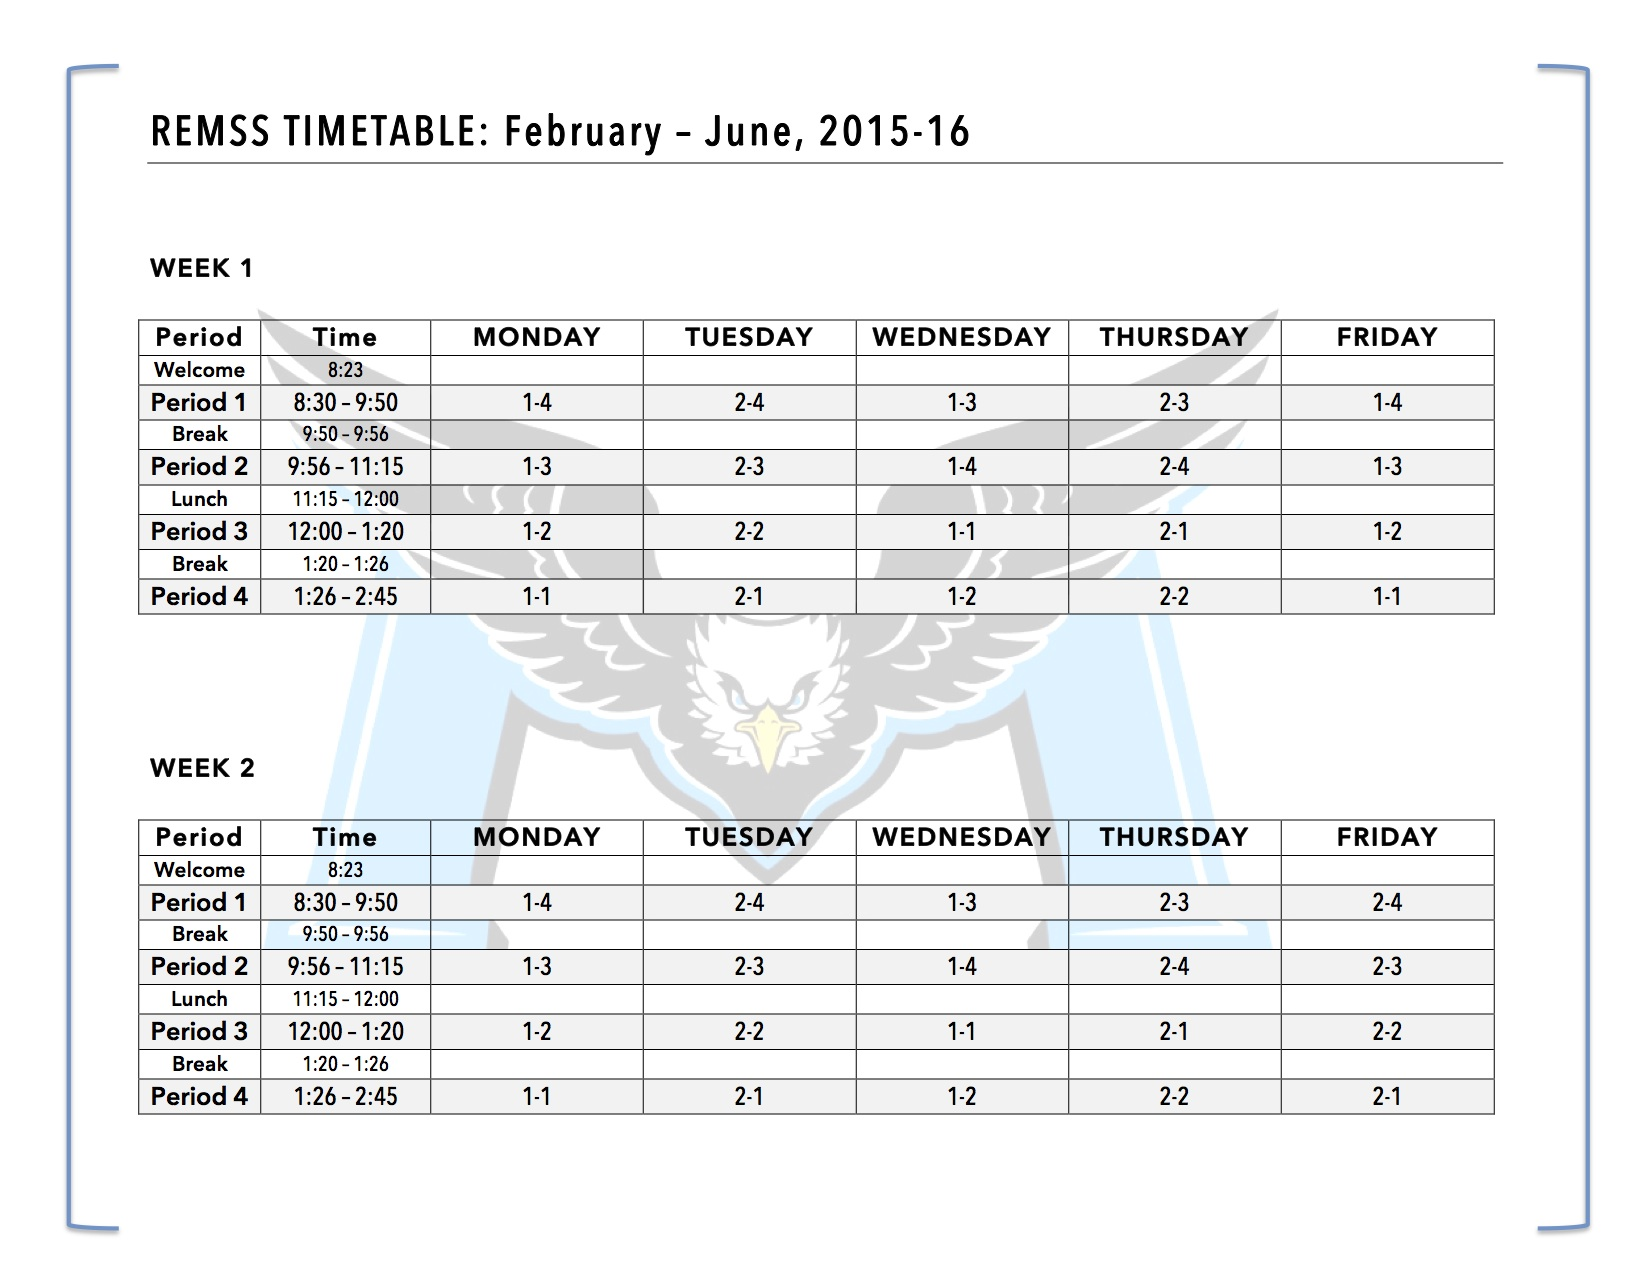 REMSS TIMETABLE February_June 2015